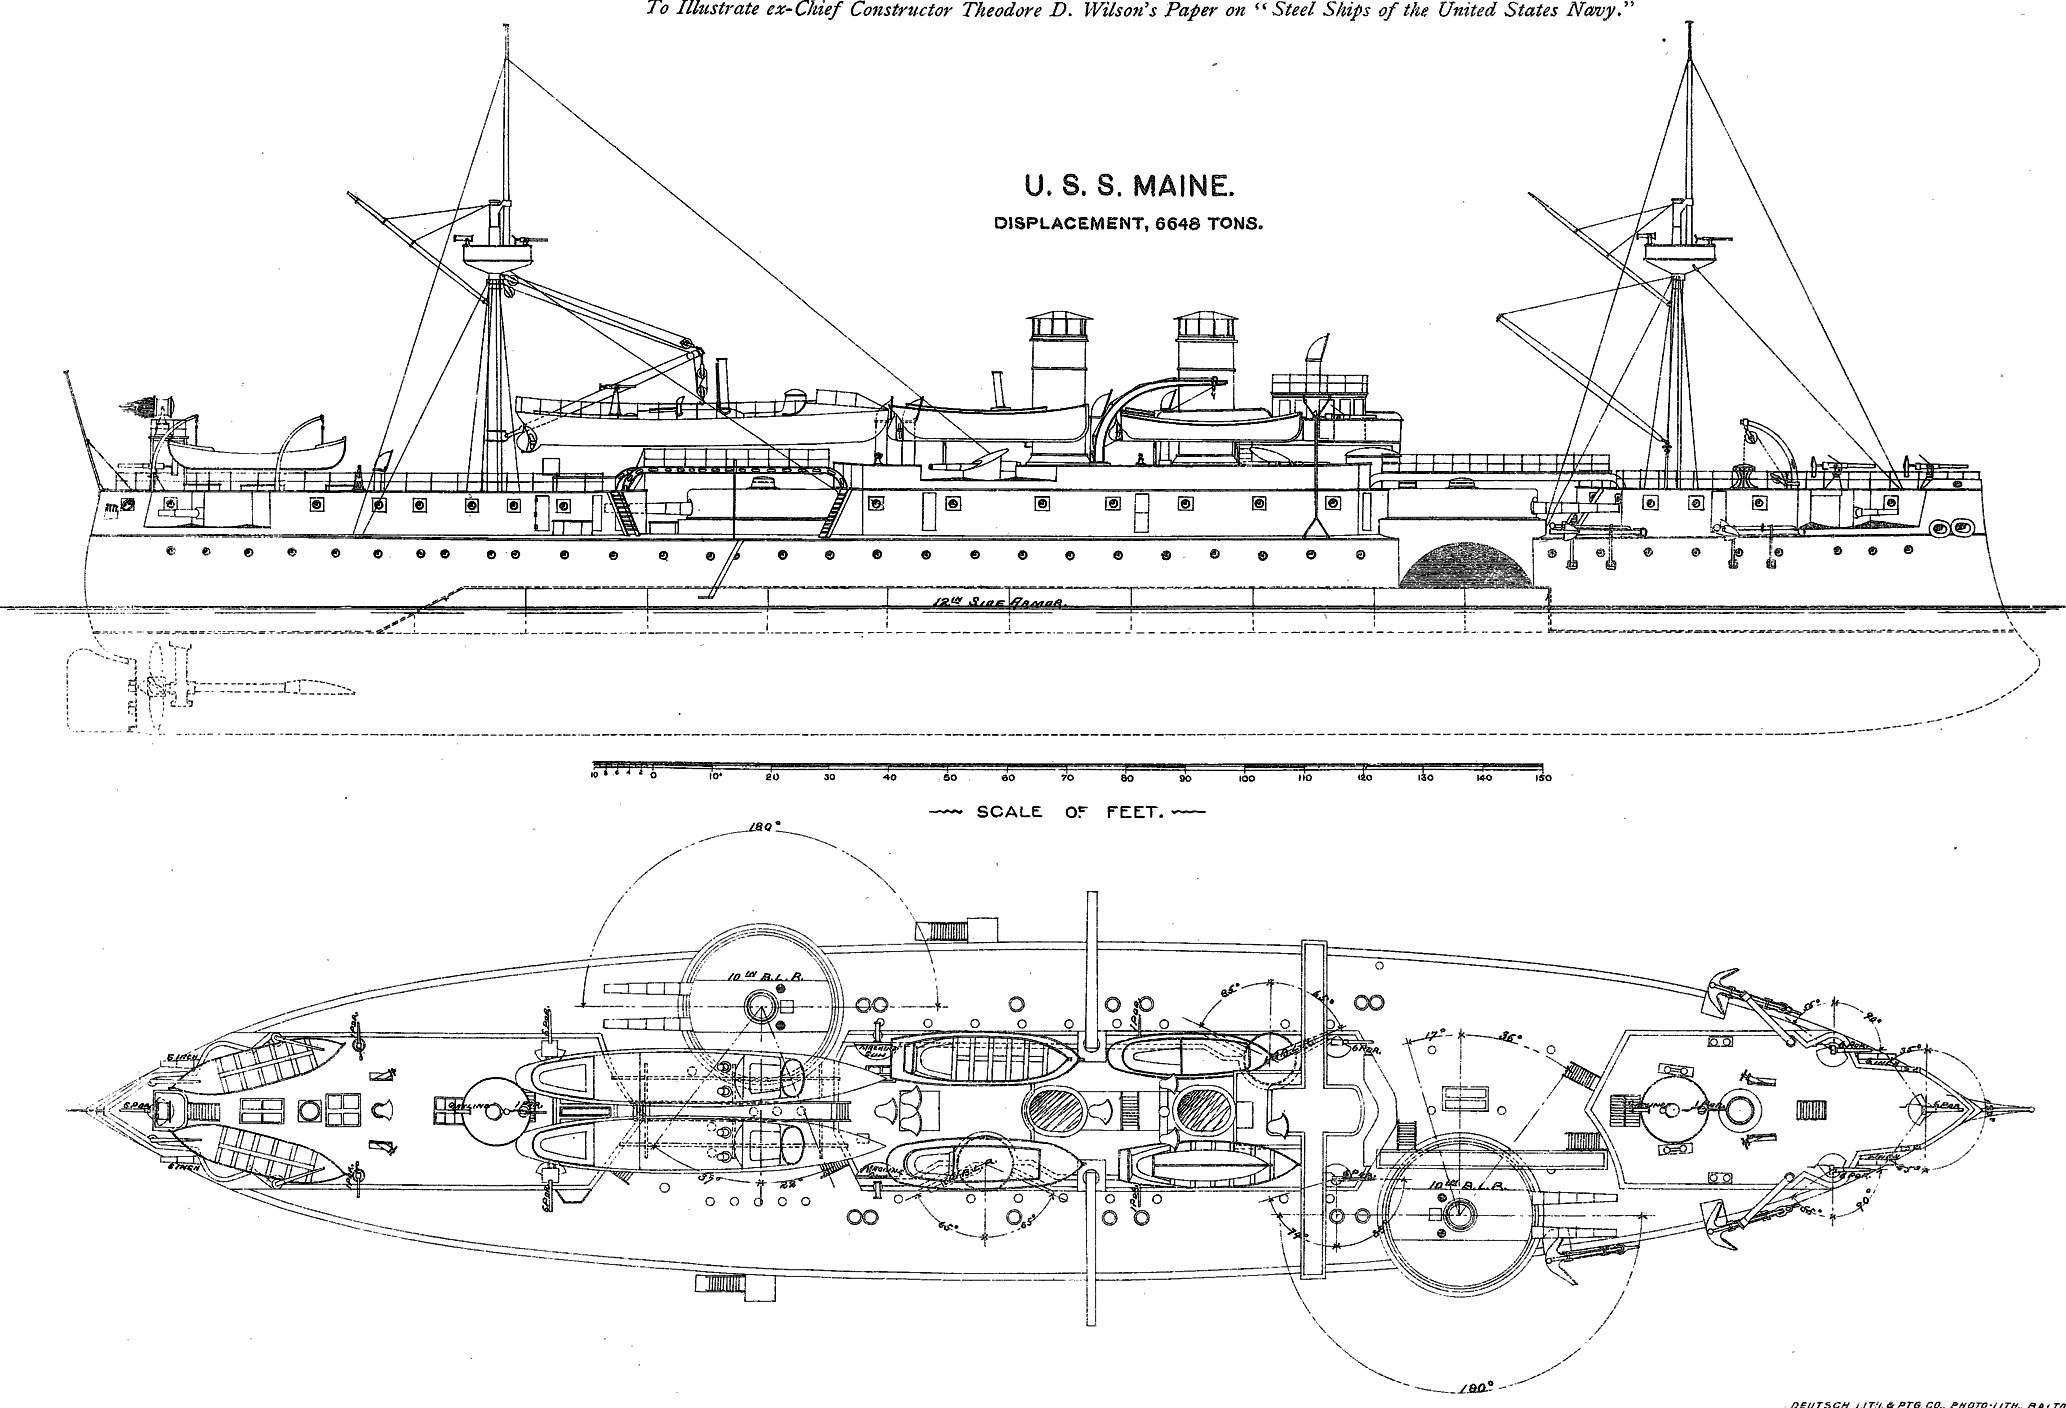 uss monitor diagram 2006 chrysler sebring fuse box schematic drawing of the maine get free image